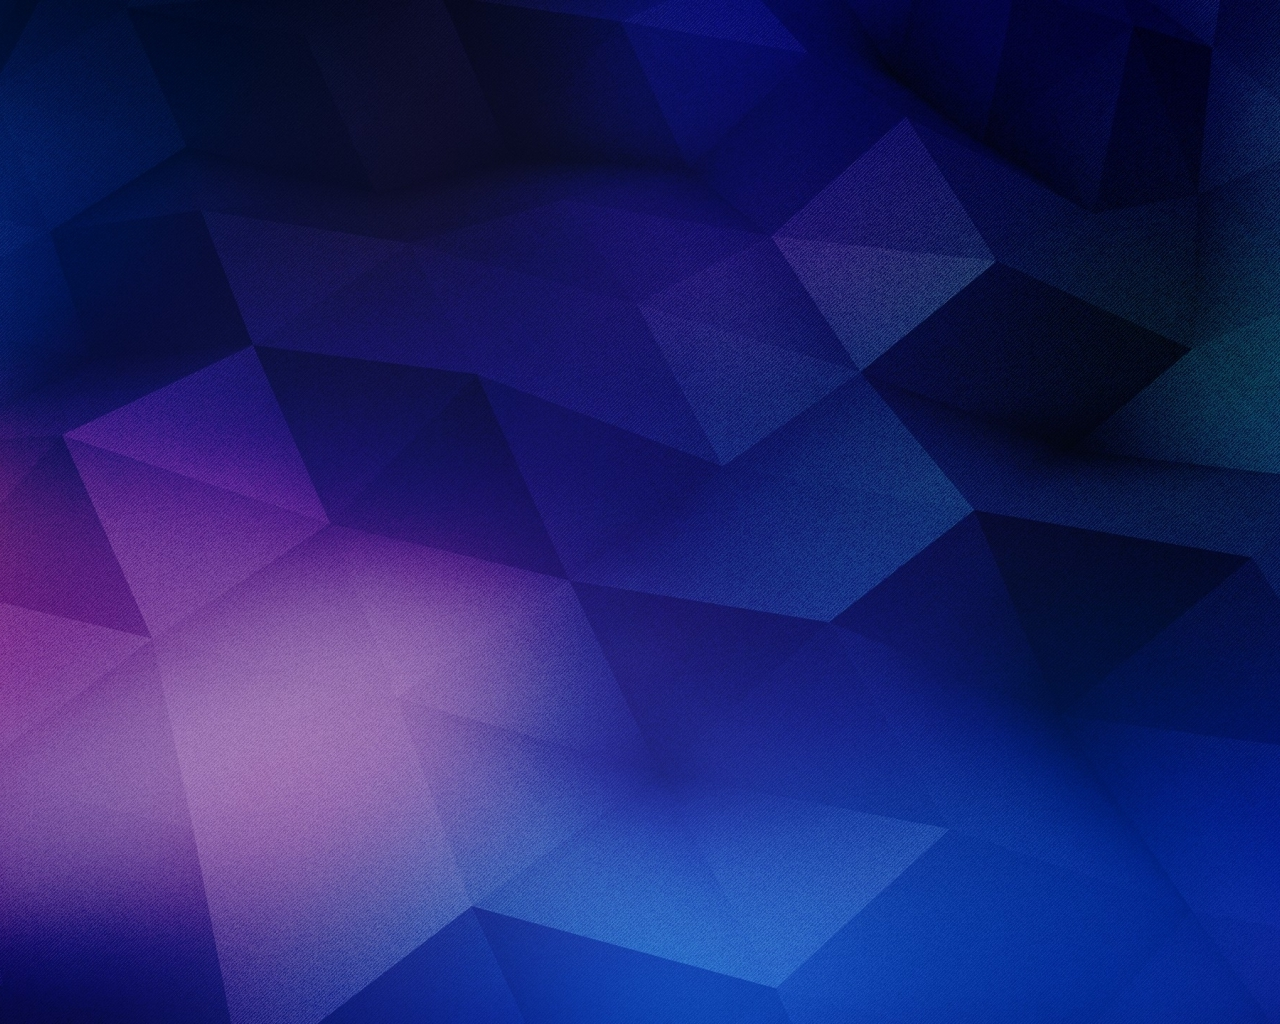 Blue and purple geometry wallpaper in 3D   Abstract wallpapers 1280x1024